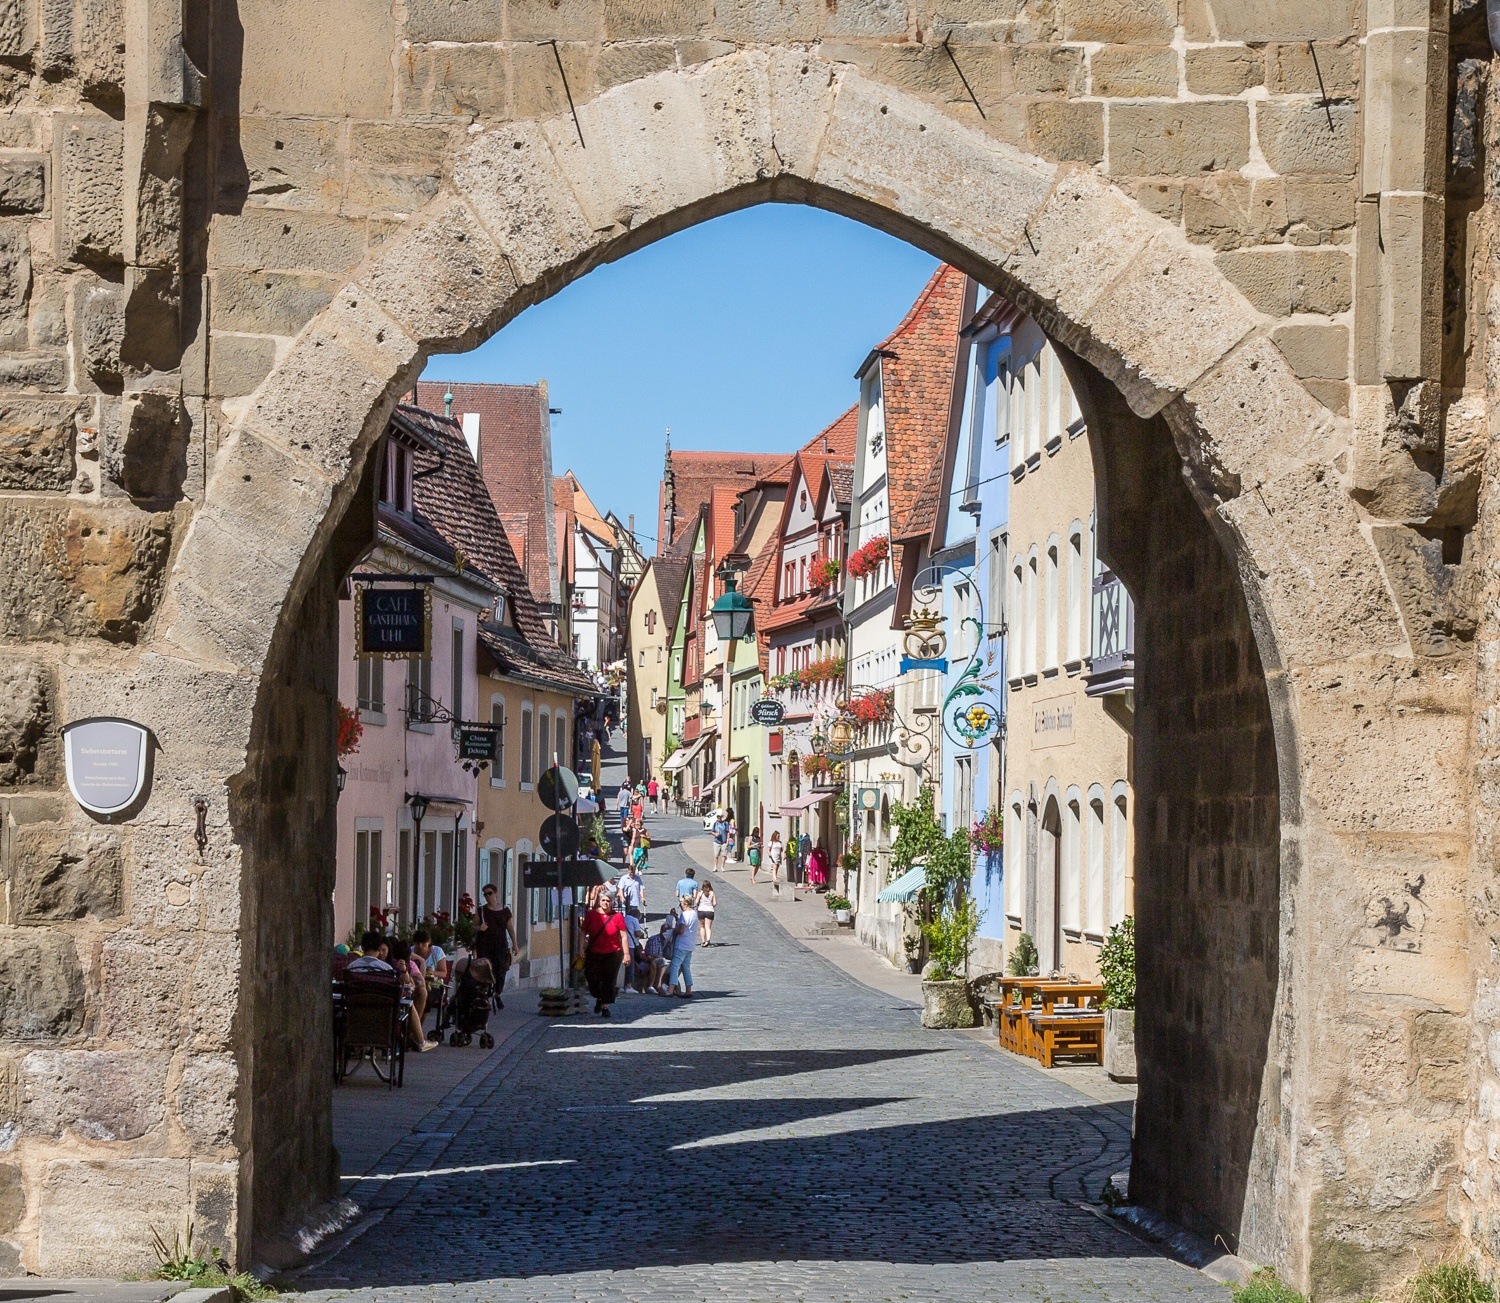 Rothenburg ob der Tauber Photo Maxmann on Pixabay